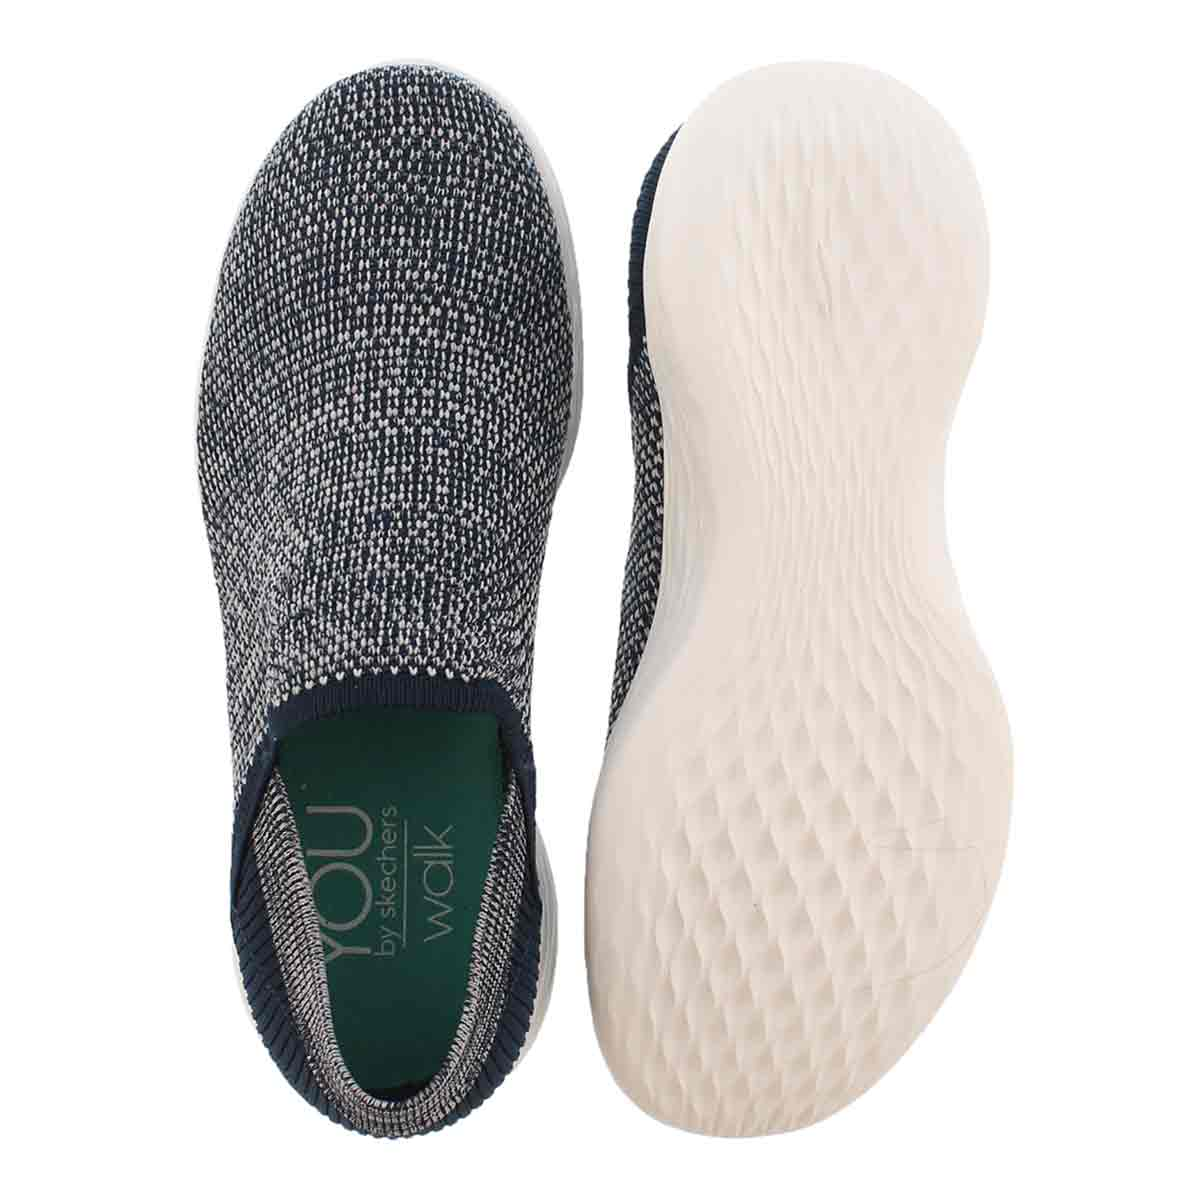 Lds YOU Rise nvy/wht slipon walking shoe